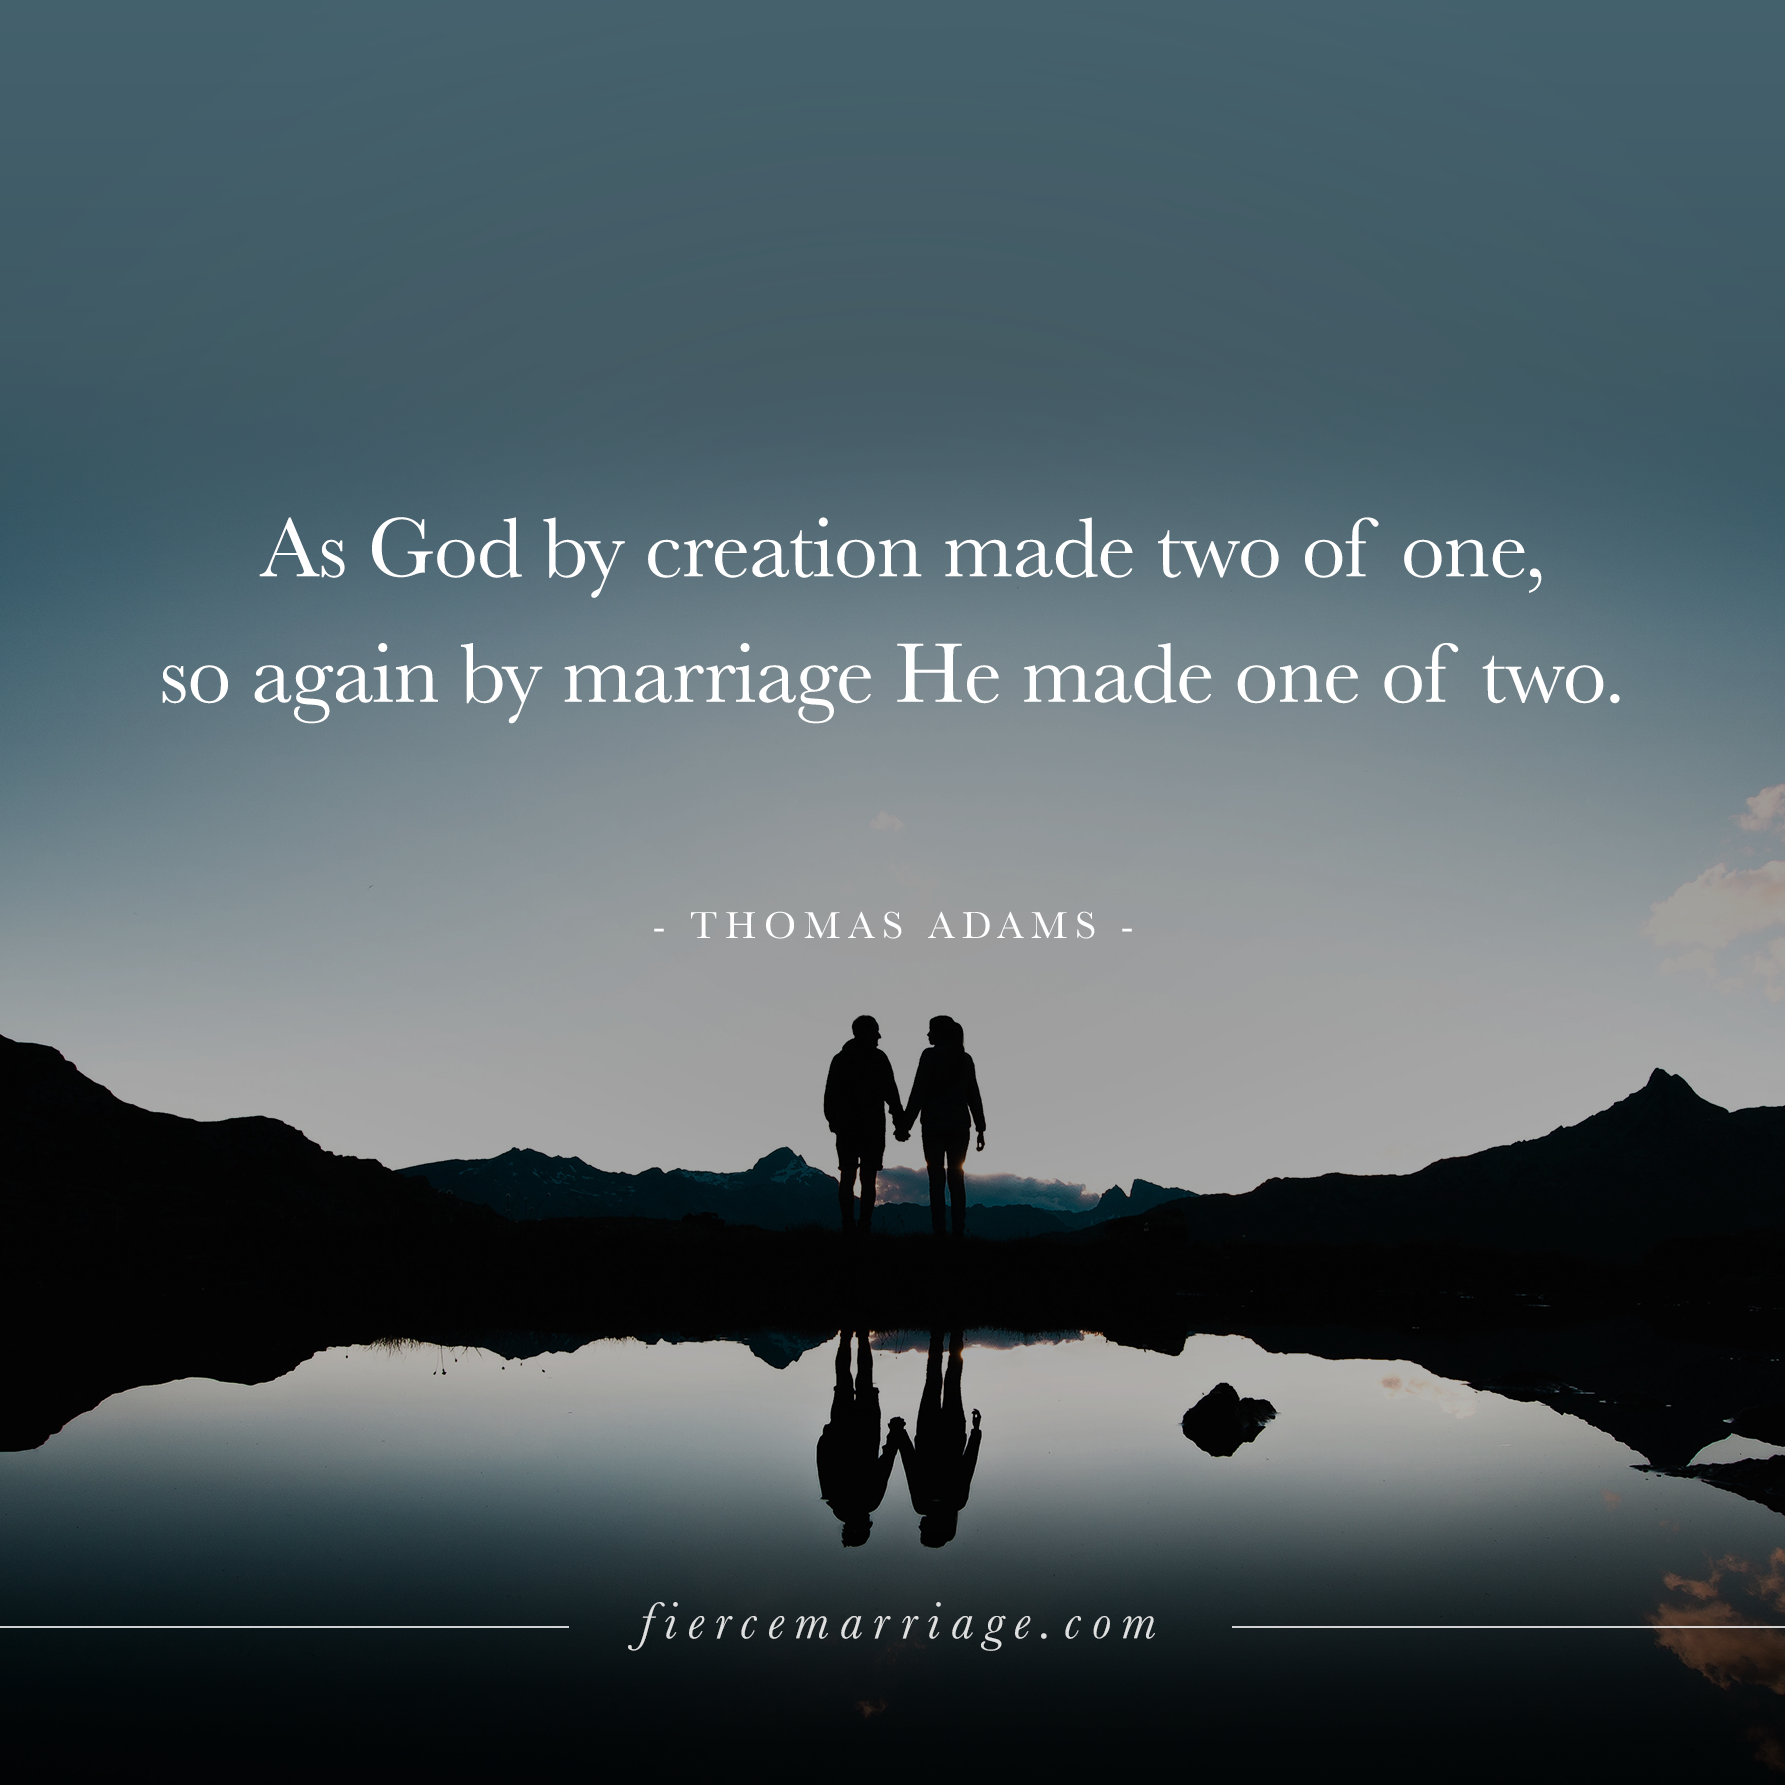 as god by creation made two of one so again by marriage he made